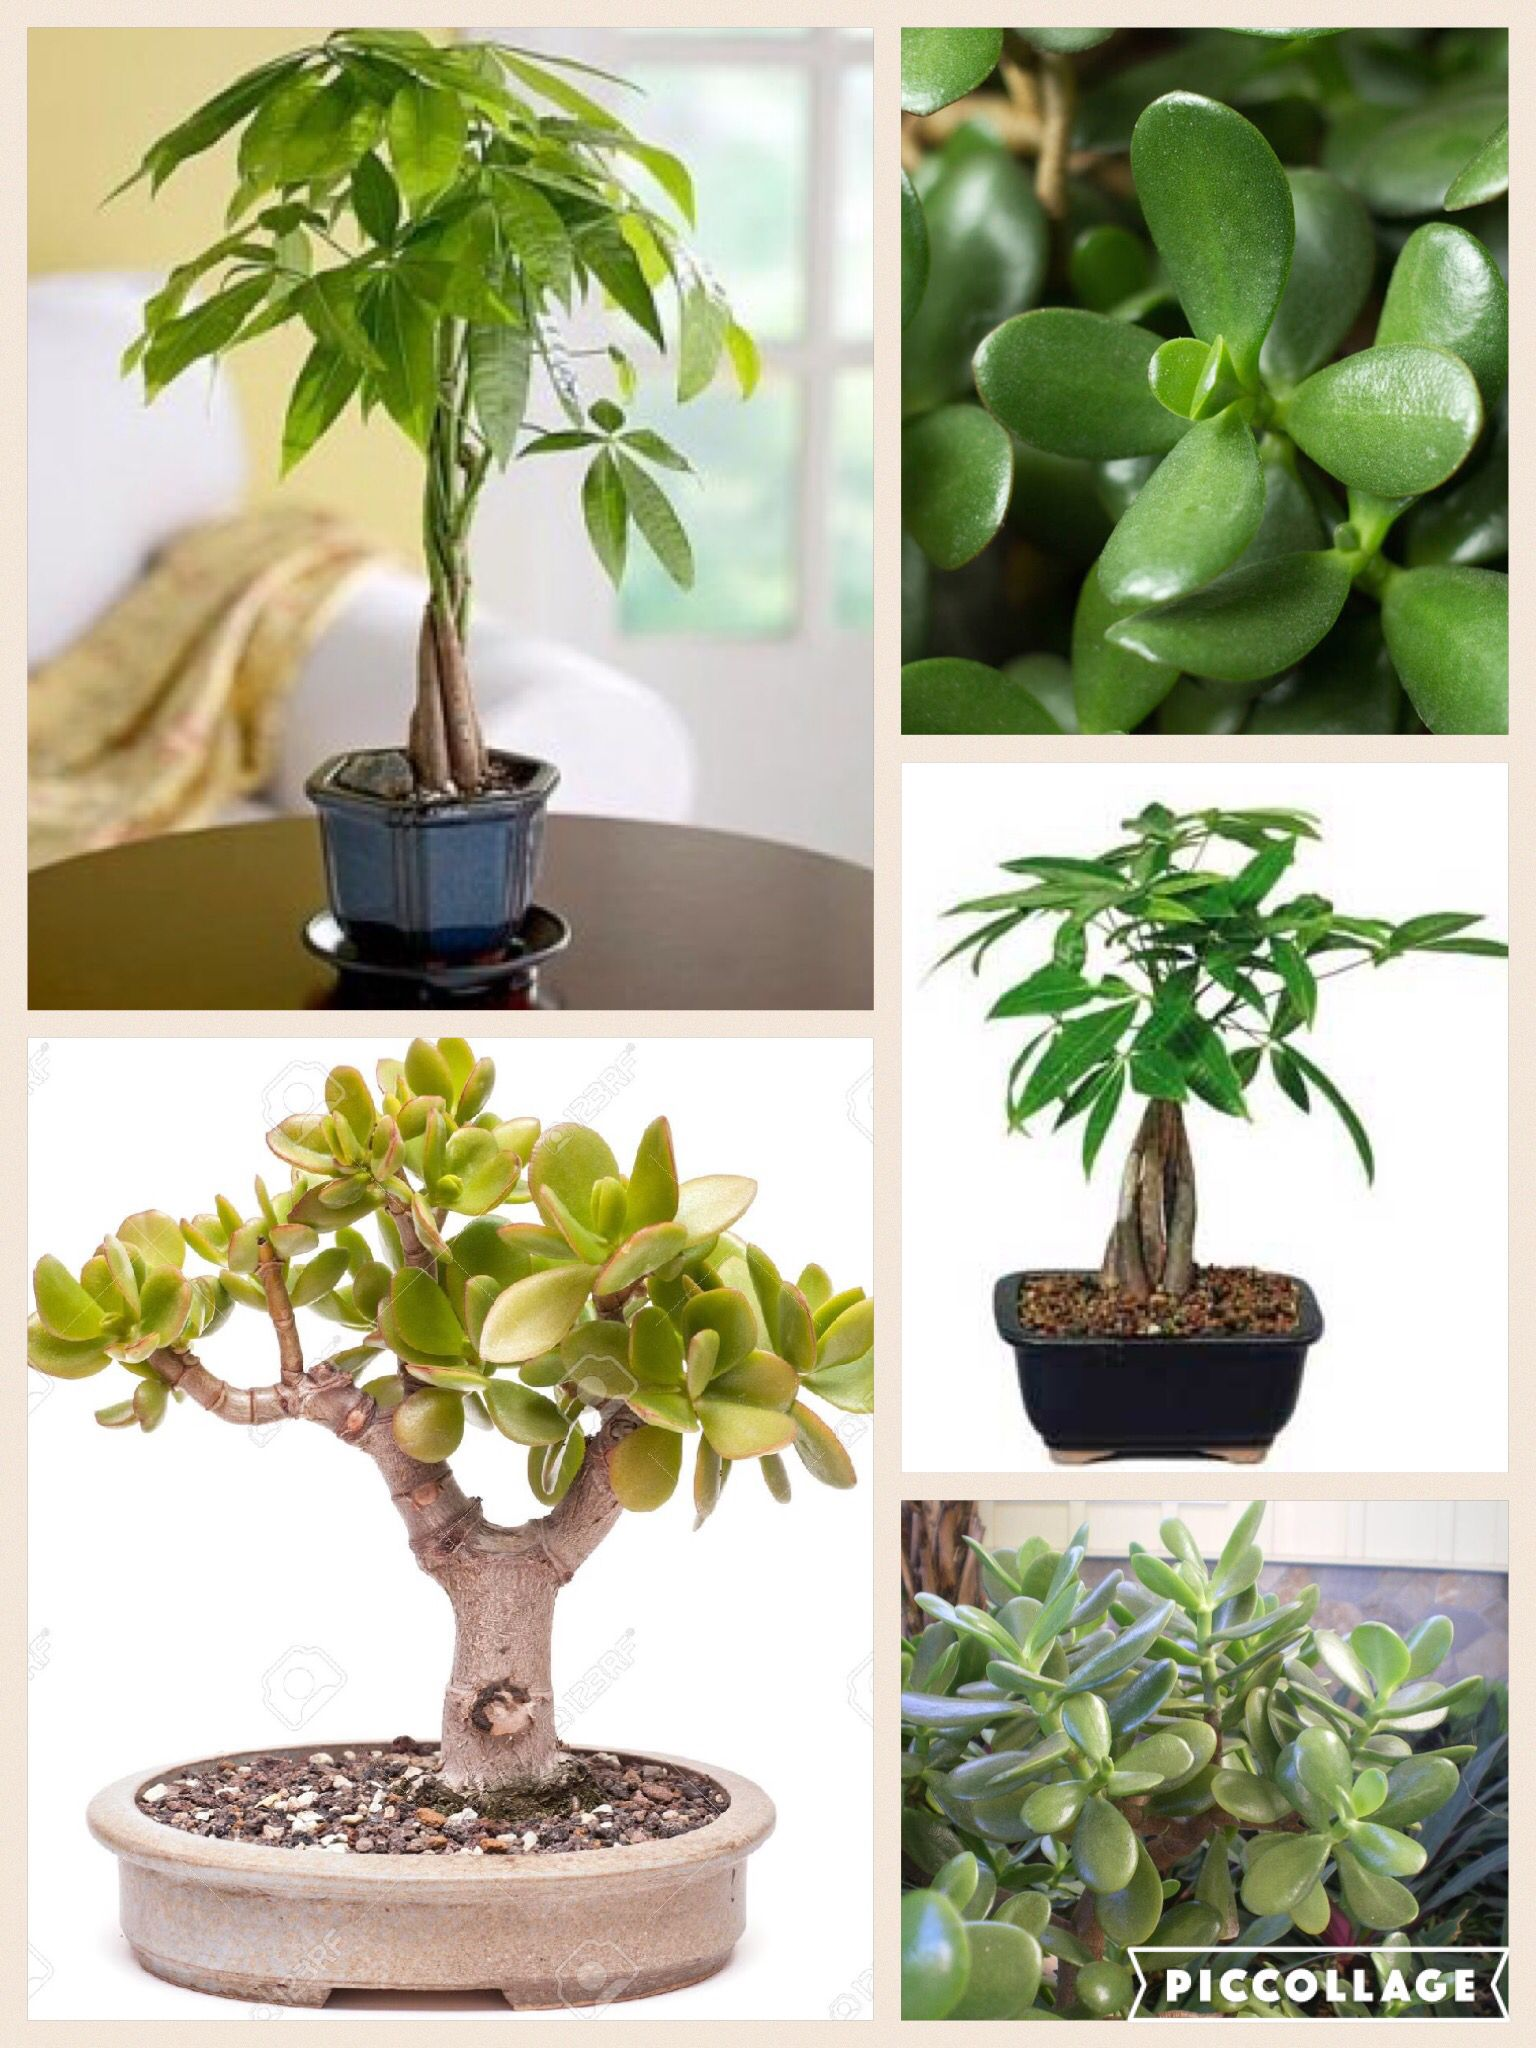 money plant trees in feng shui best to place them in the se sector of your home and or office to. Black Bedroom Furniture Sets. Home Design Ideas